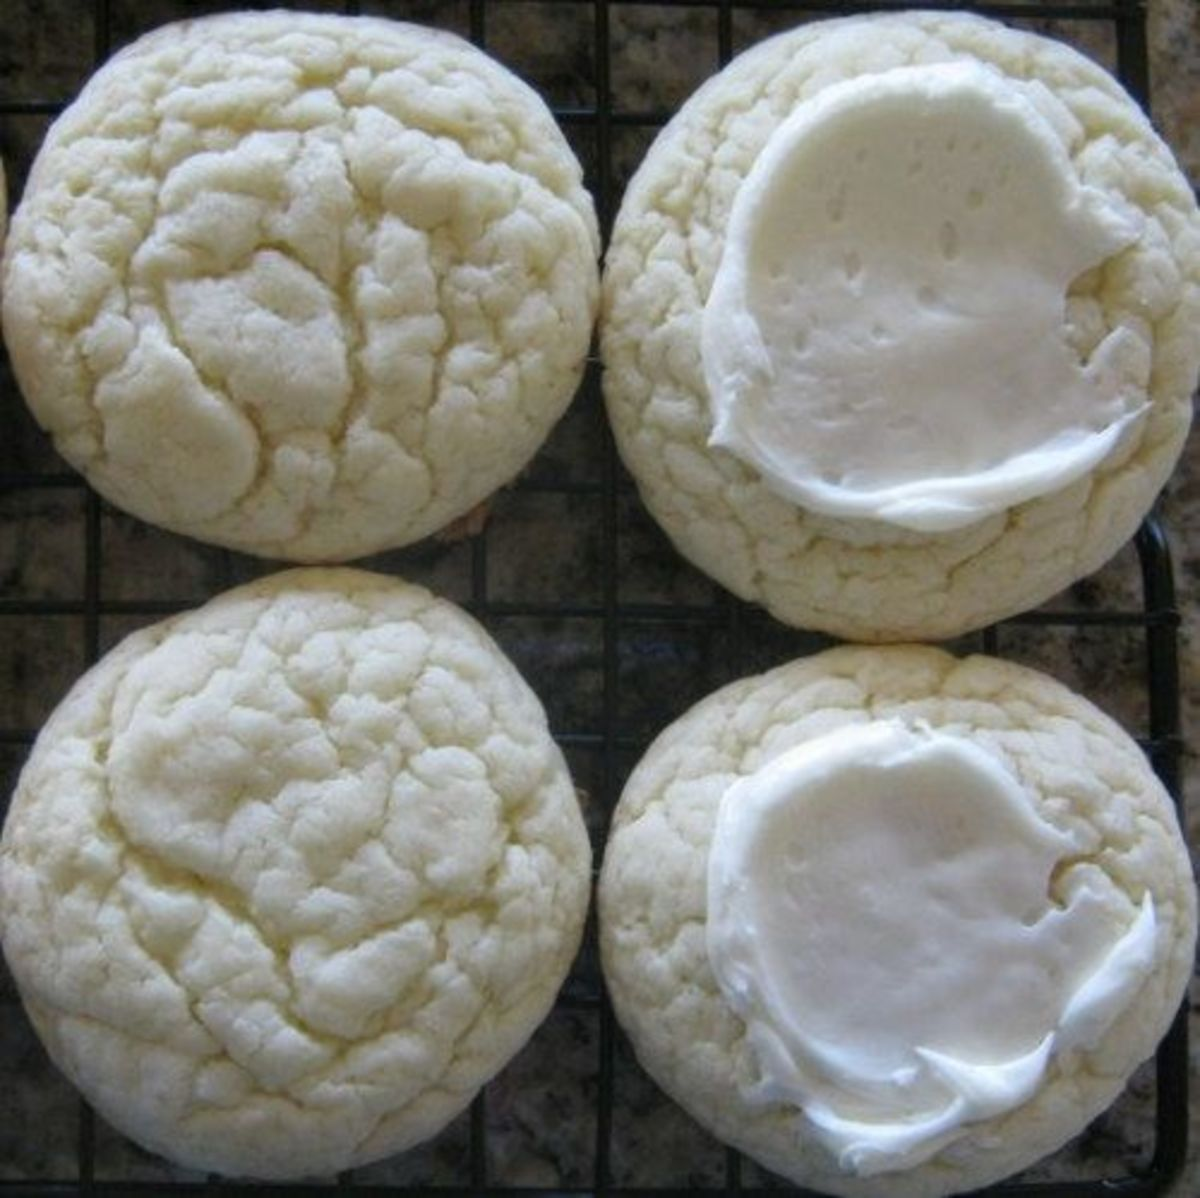 ... White Cookies from Cake Mix (vanilla cake mix with vanilla frosting